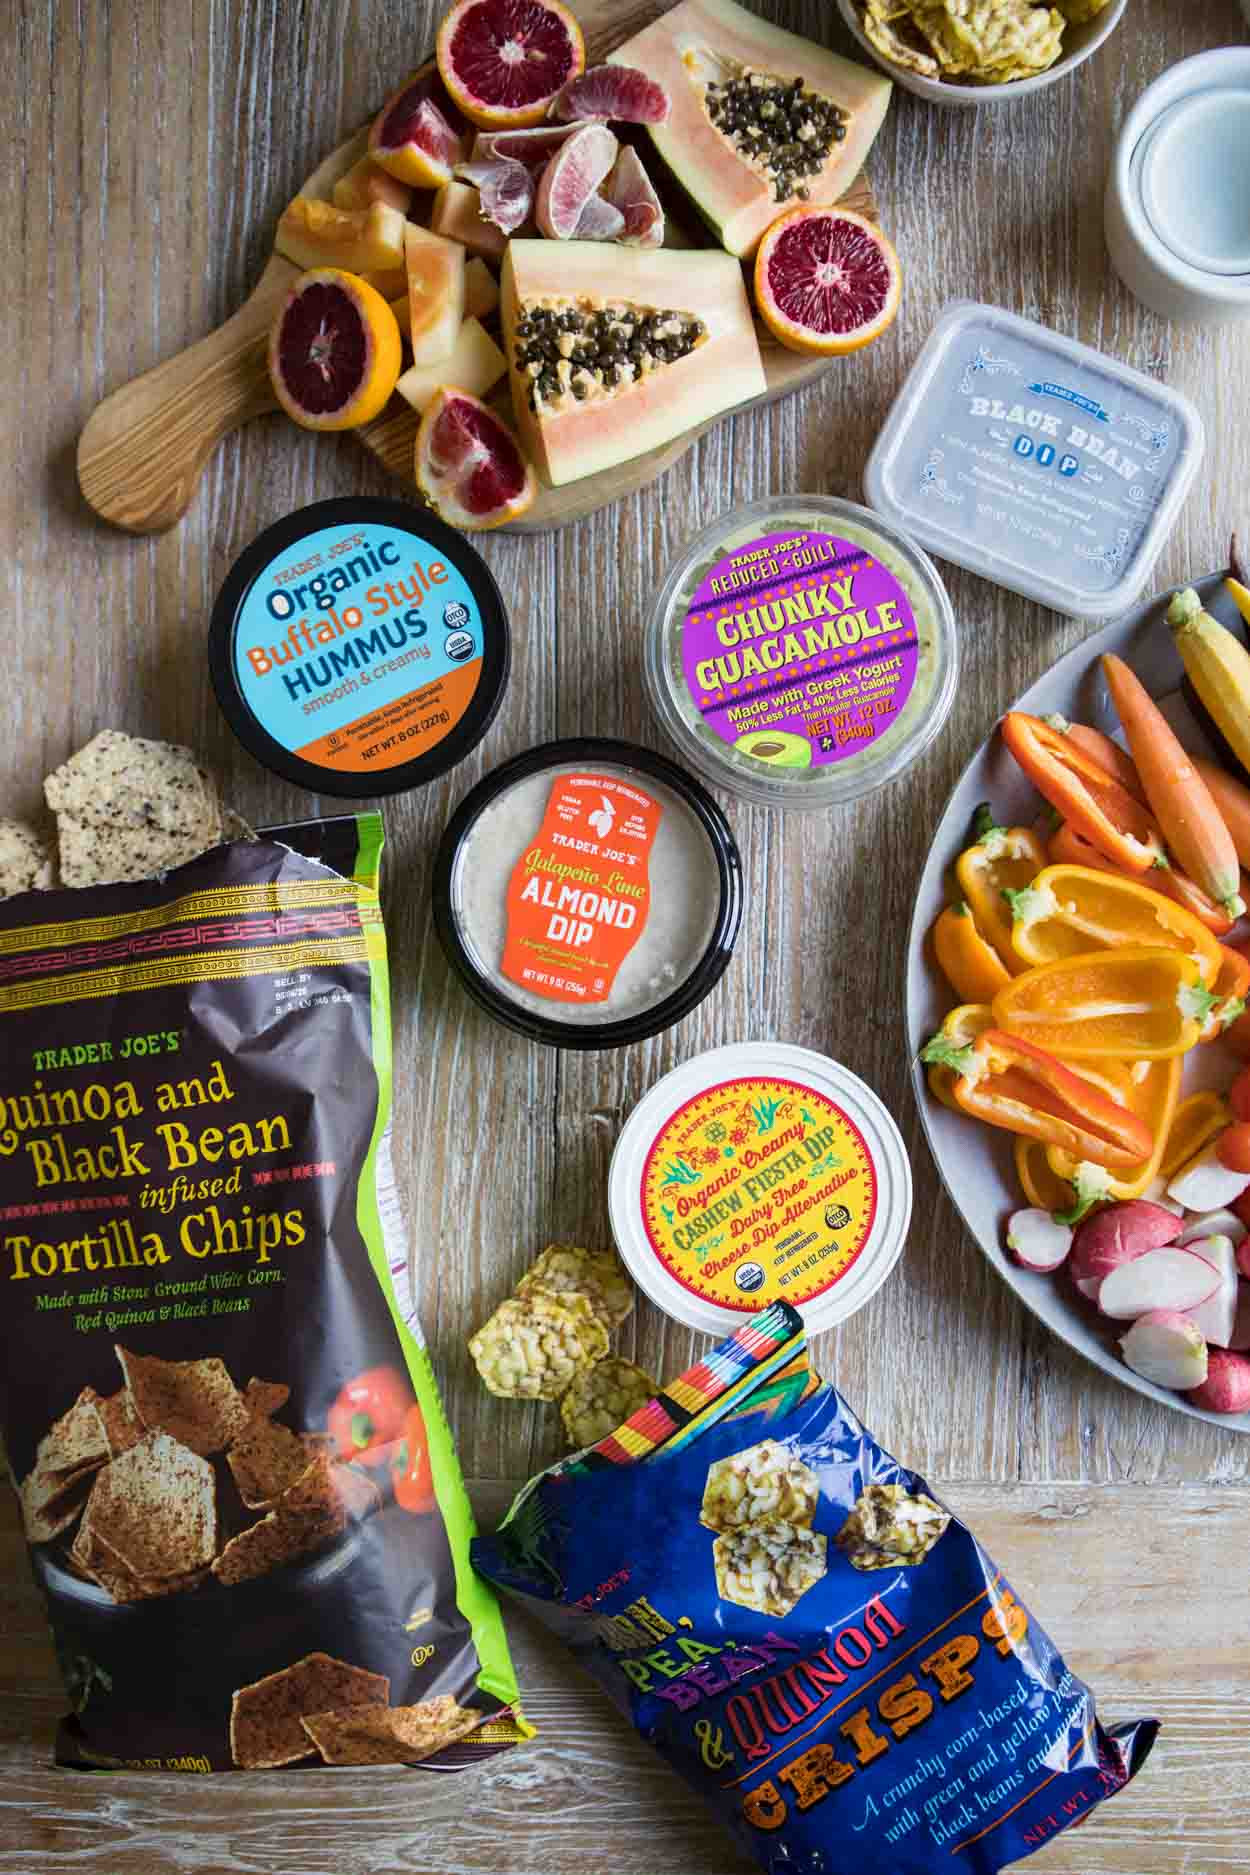 Trader Joe's dips and chips for charcuterie or crudite board